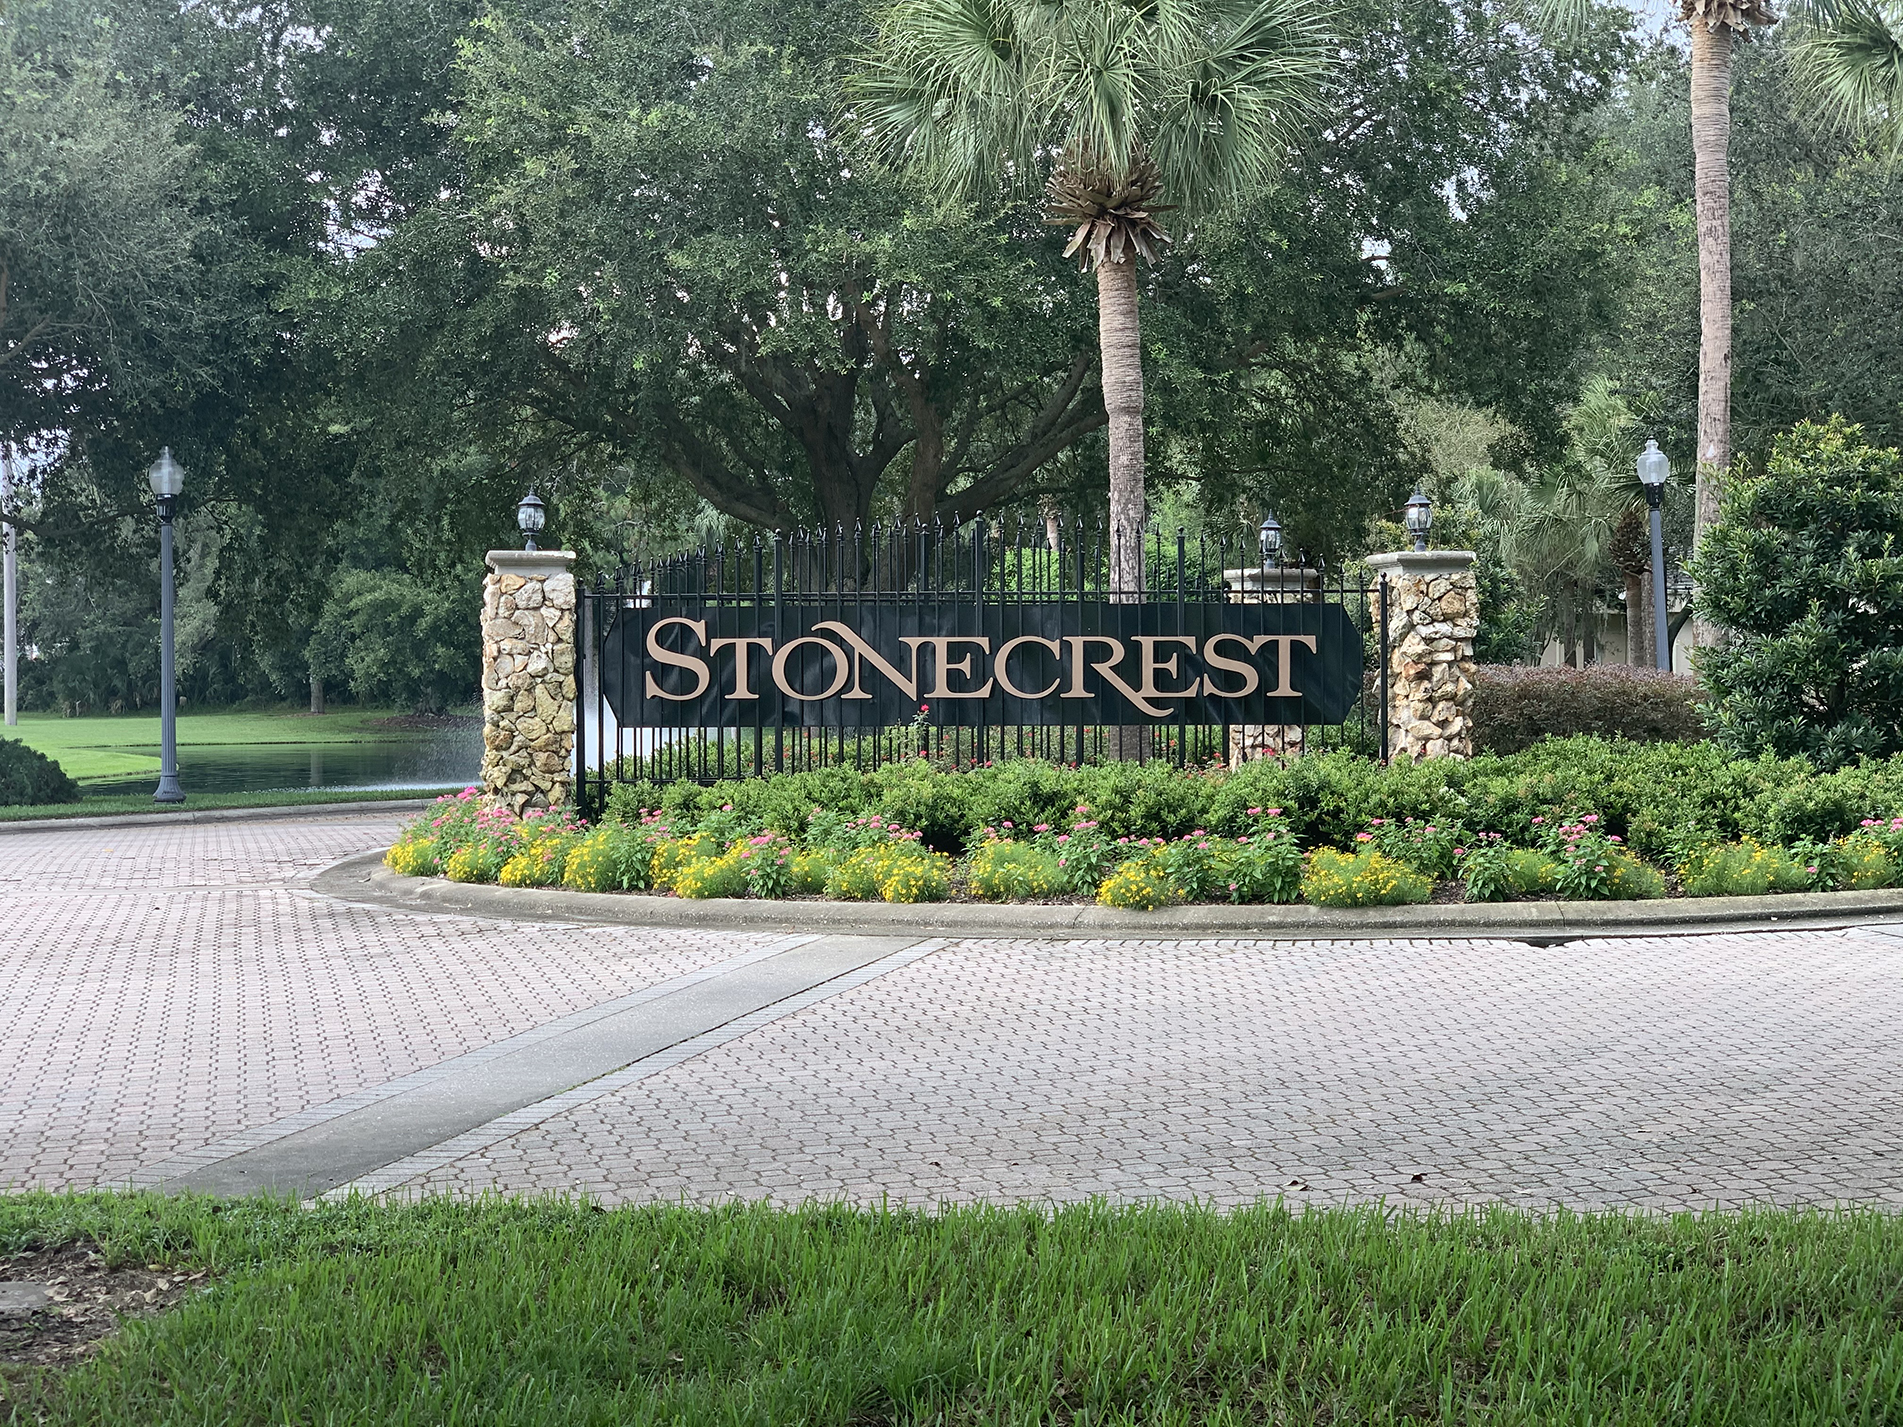 Stonecrest summerfield fl community sign